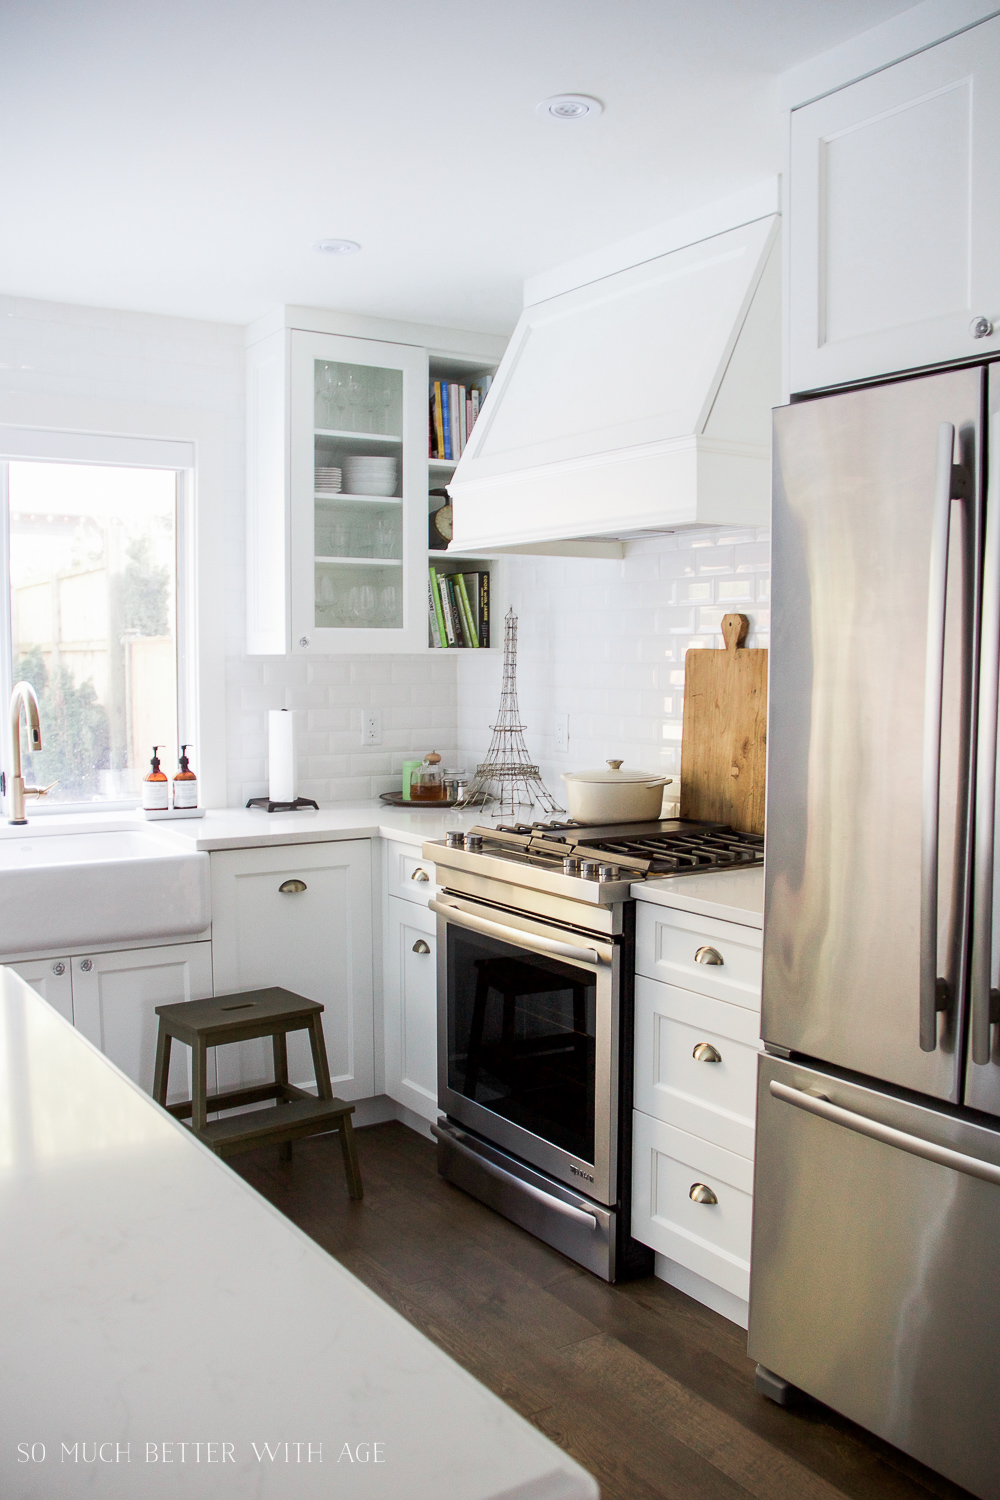 My Big Beautiful Kitchen Renovation  Before and After